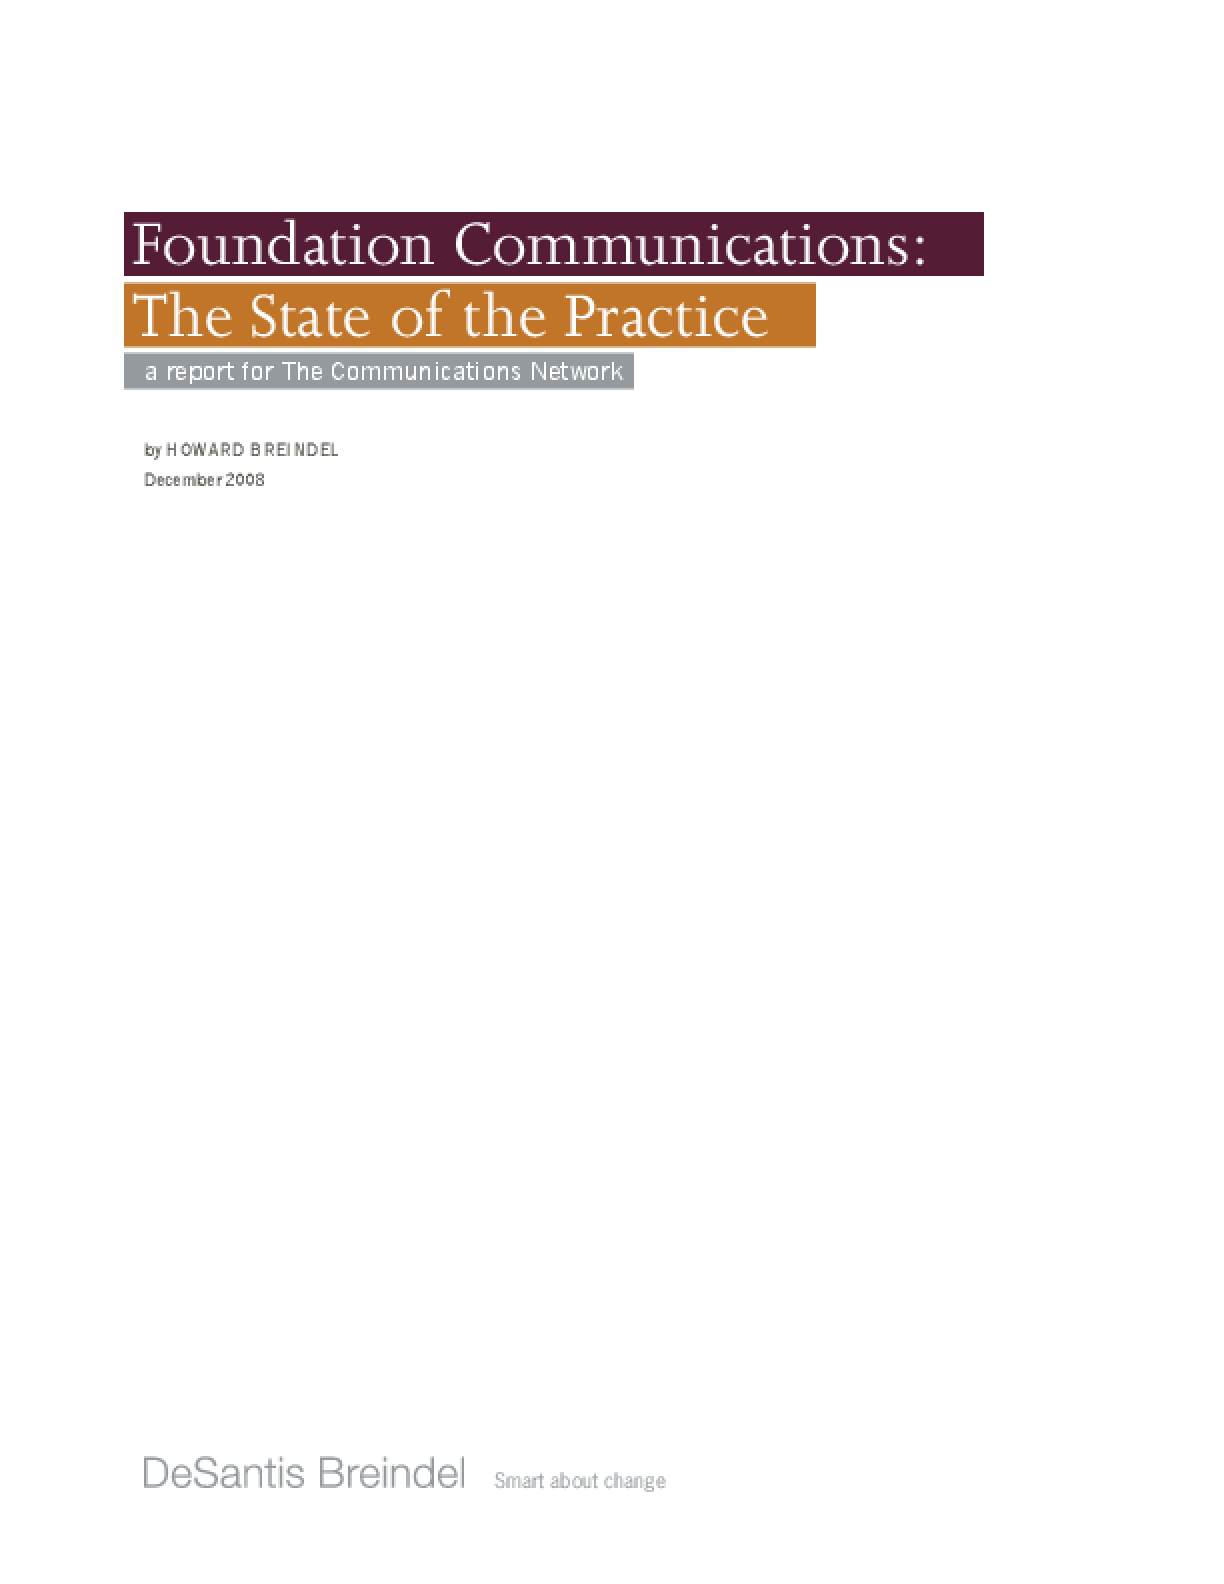 Foundation Communications: The State of Practice